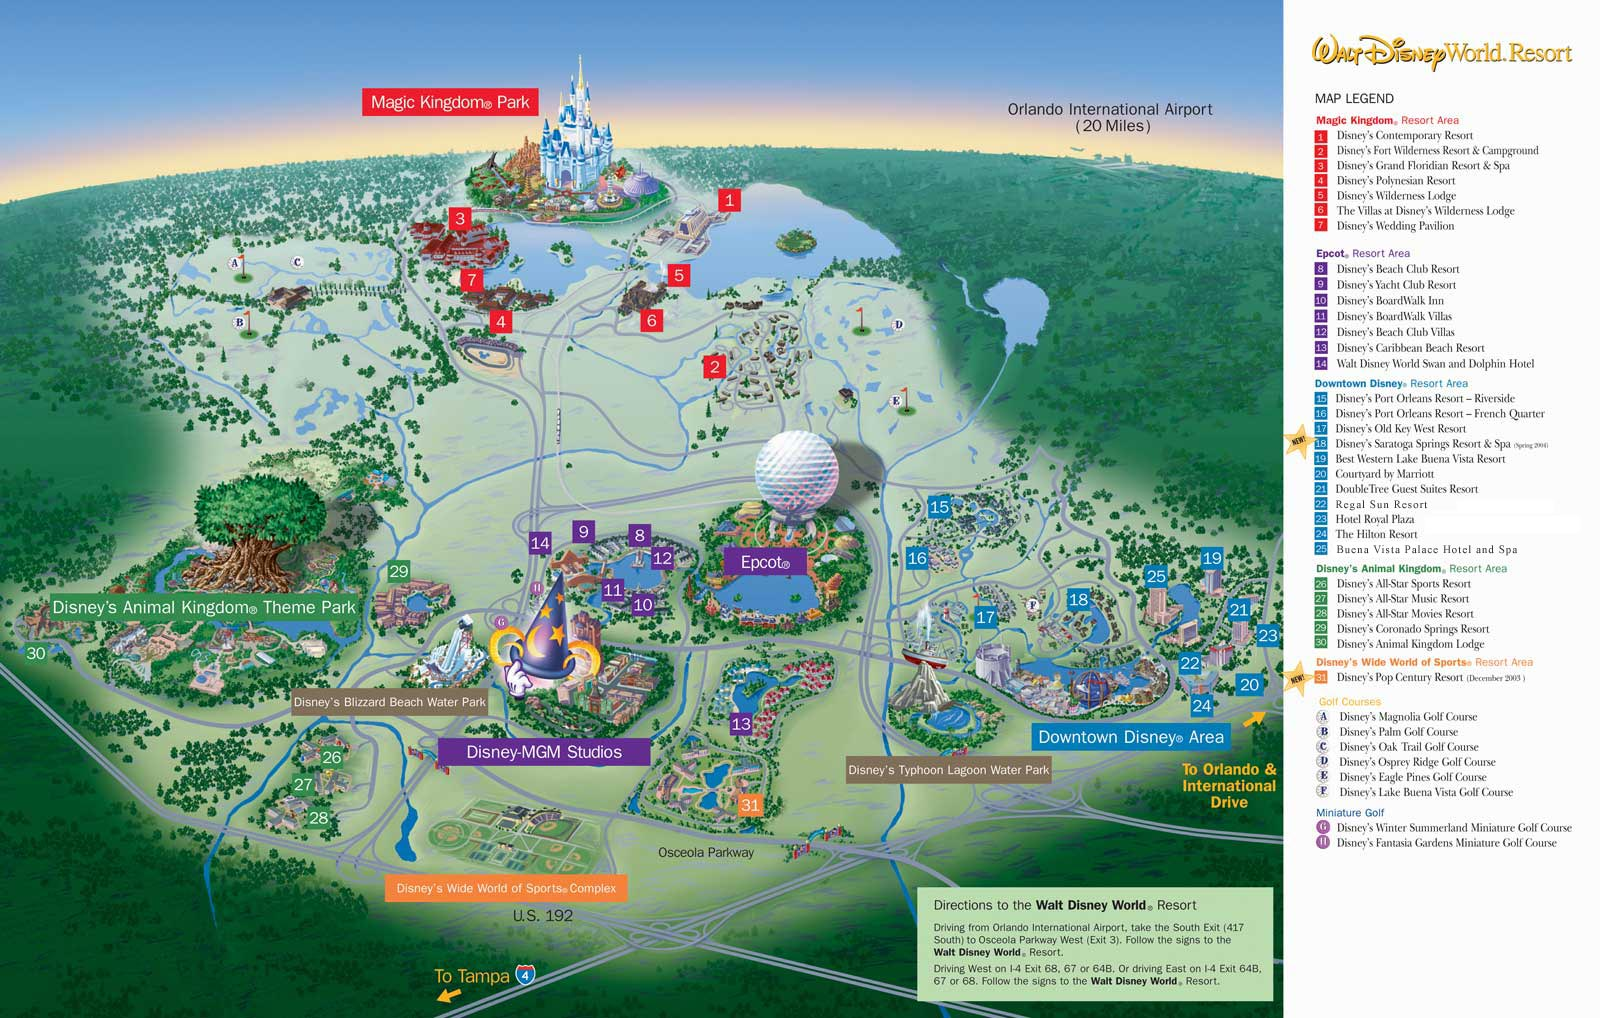 Disney World Orlando Map Map of Walt Disney World Resort   wdwinfo.com